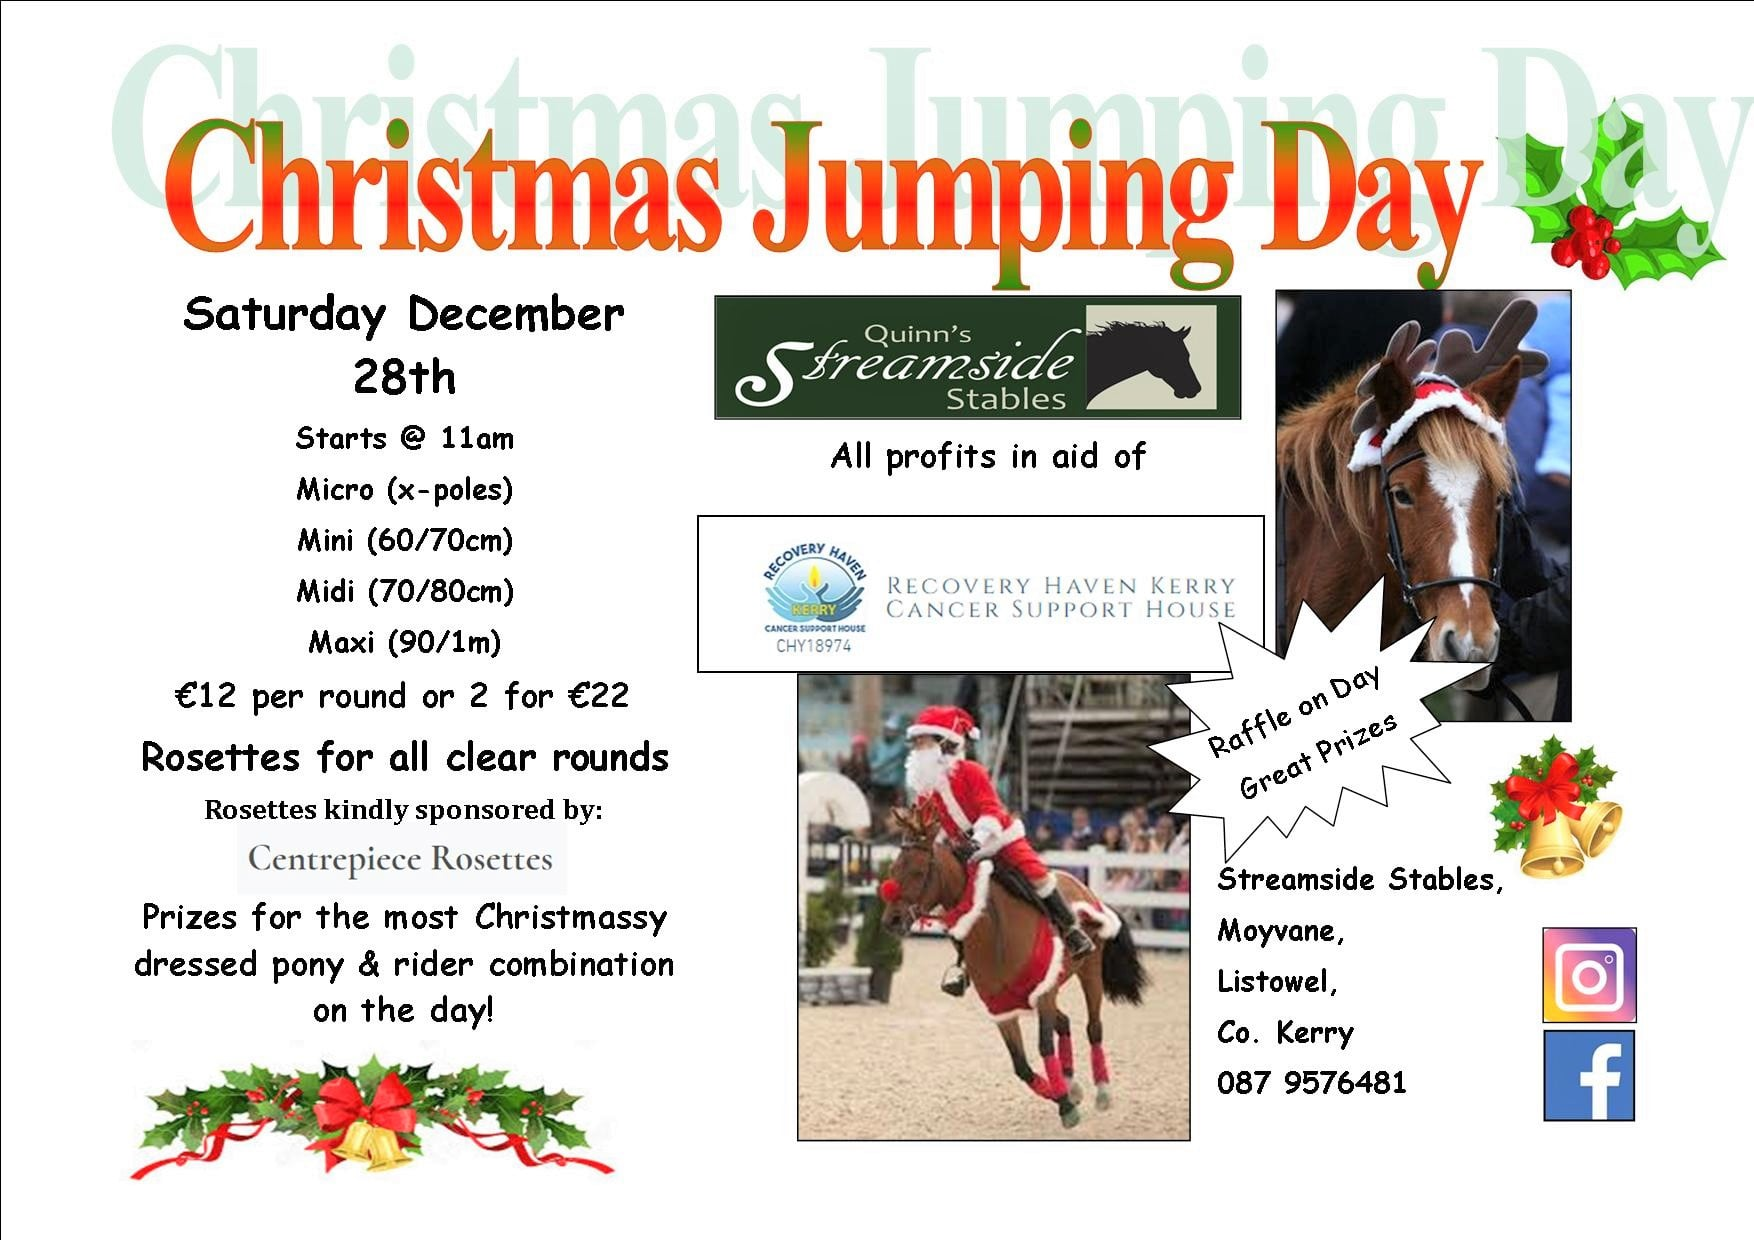 Christmas jumping day Saturday 28th Dece